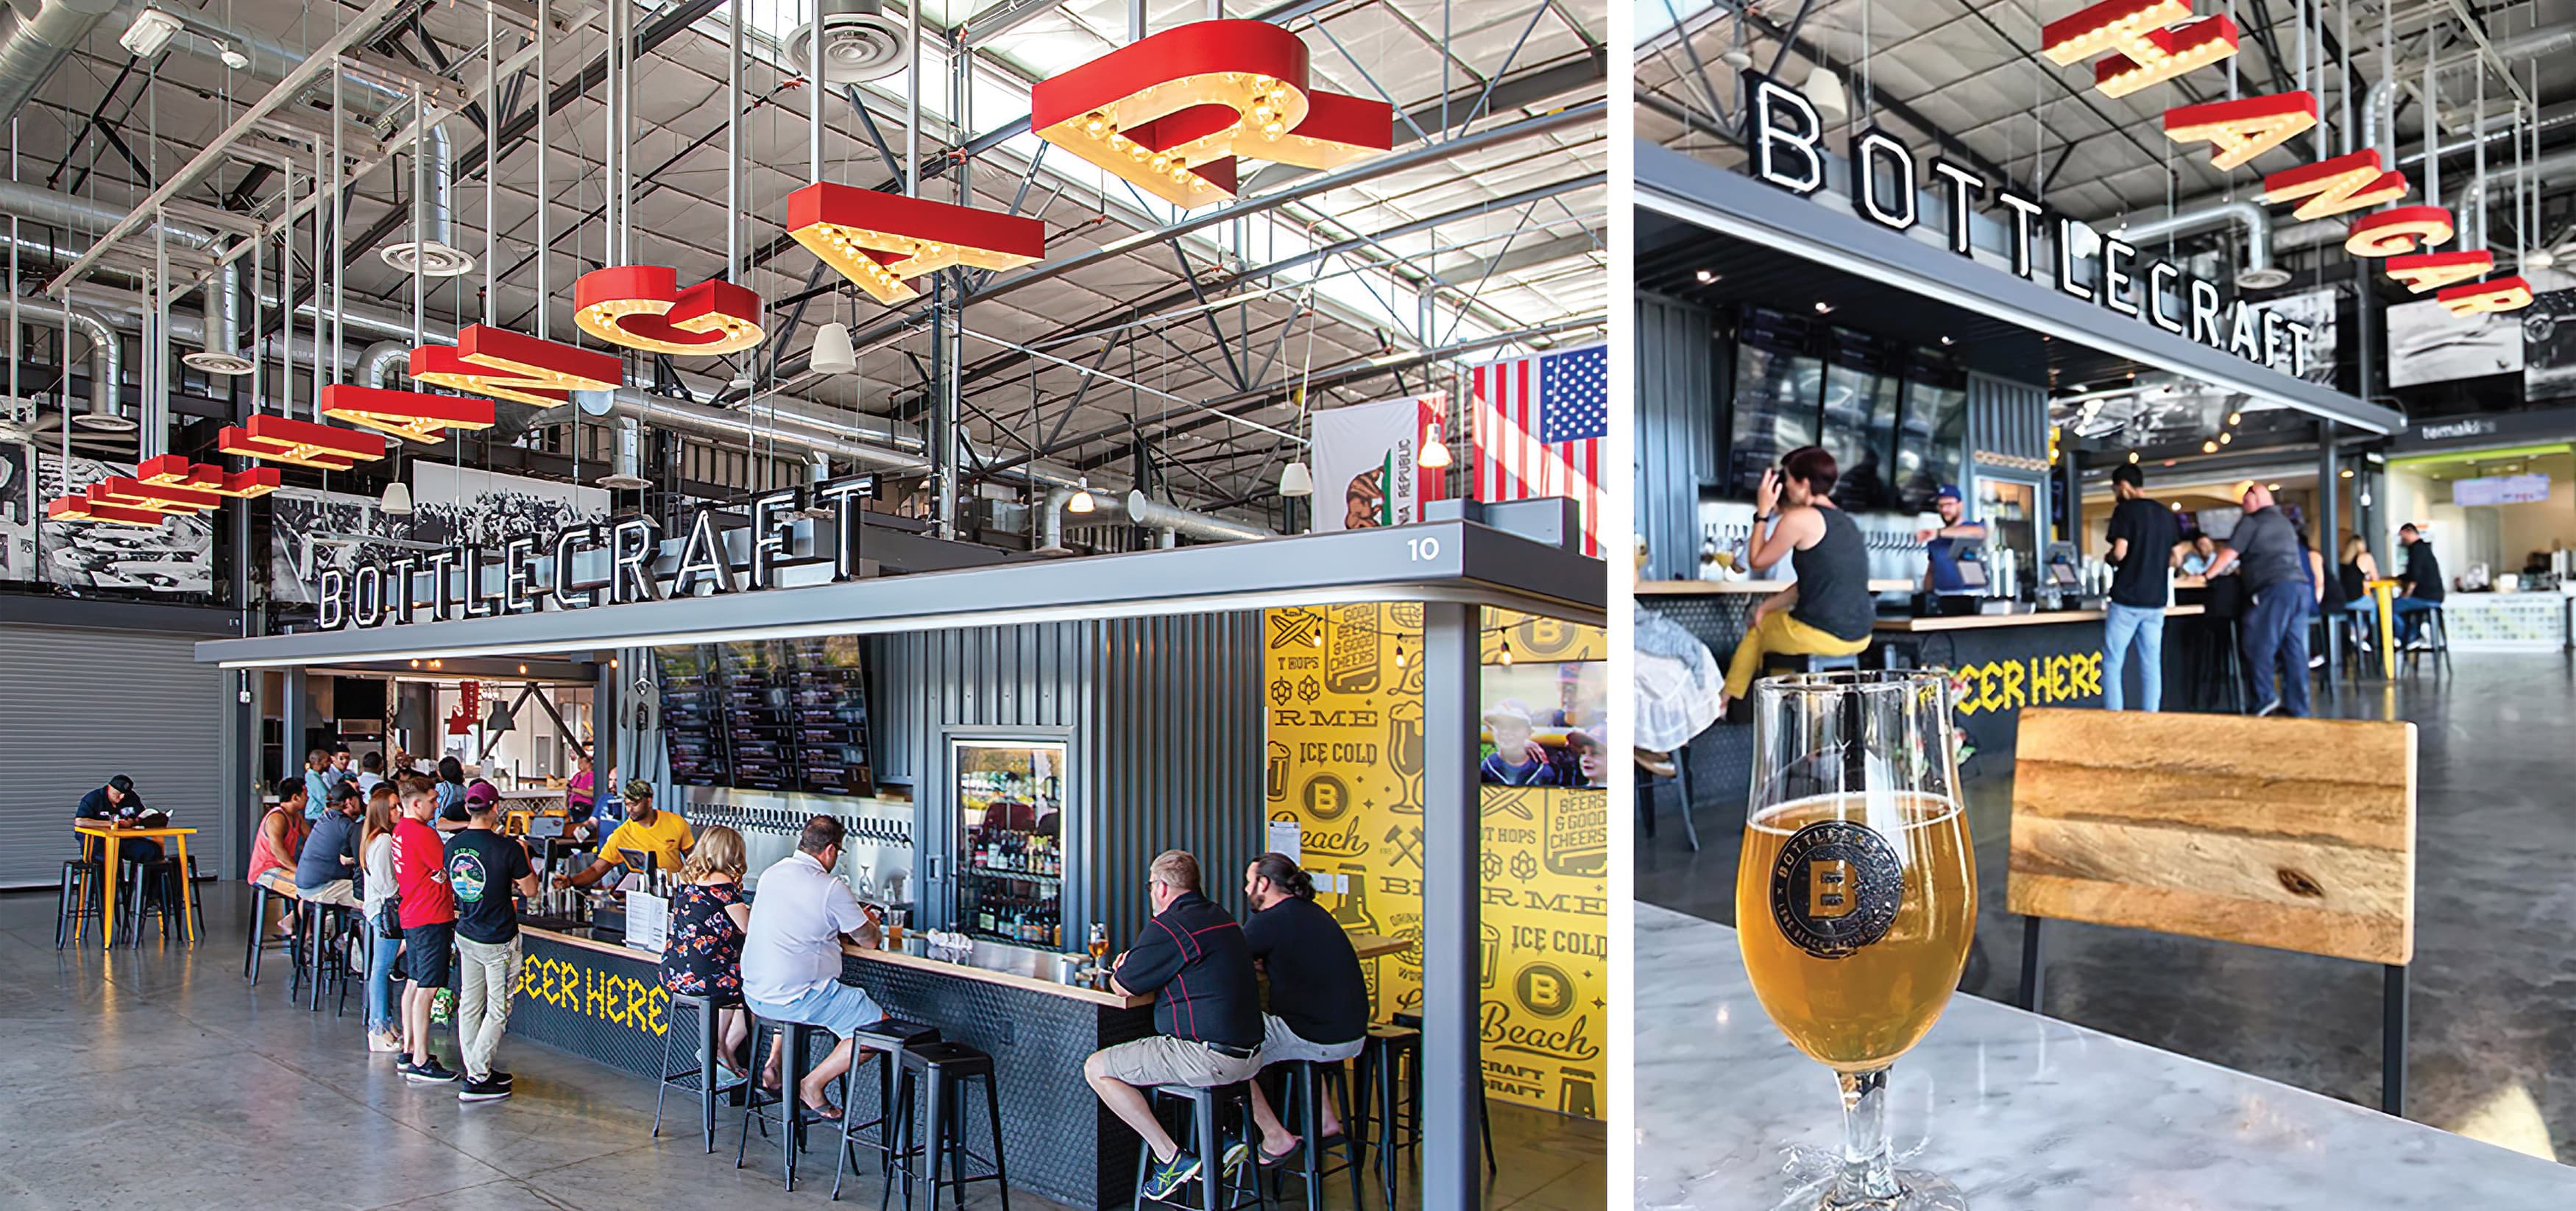 The Hangar, a food hall dining complex at Long Beach Exchange.  Tenant Signage.